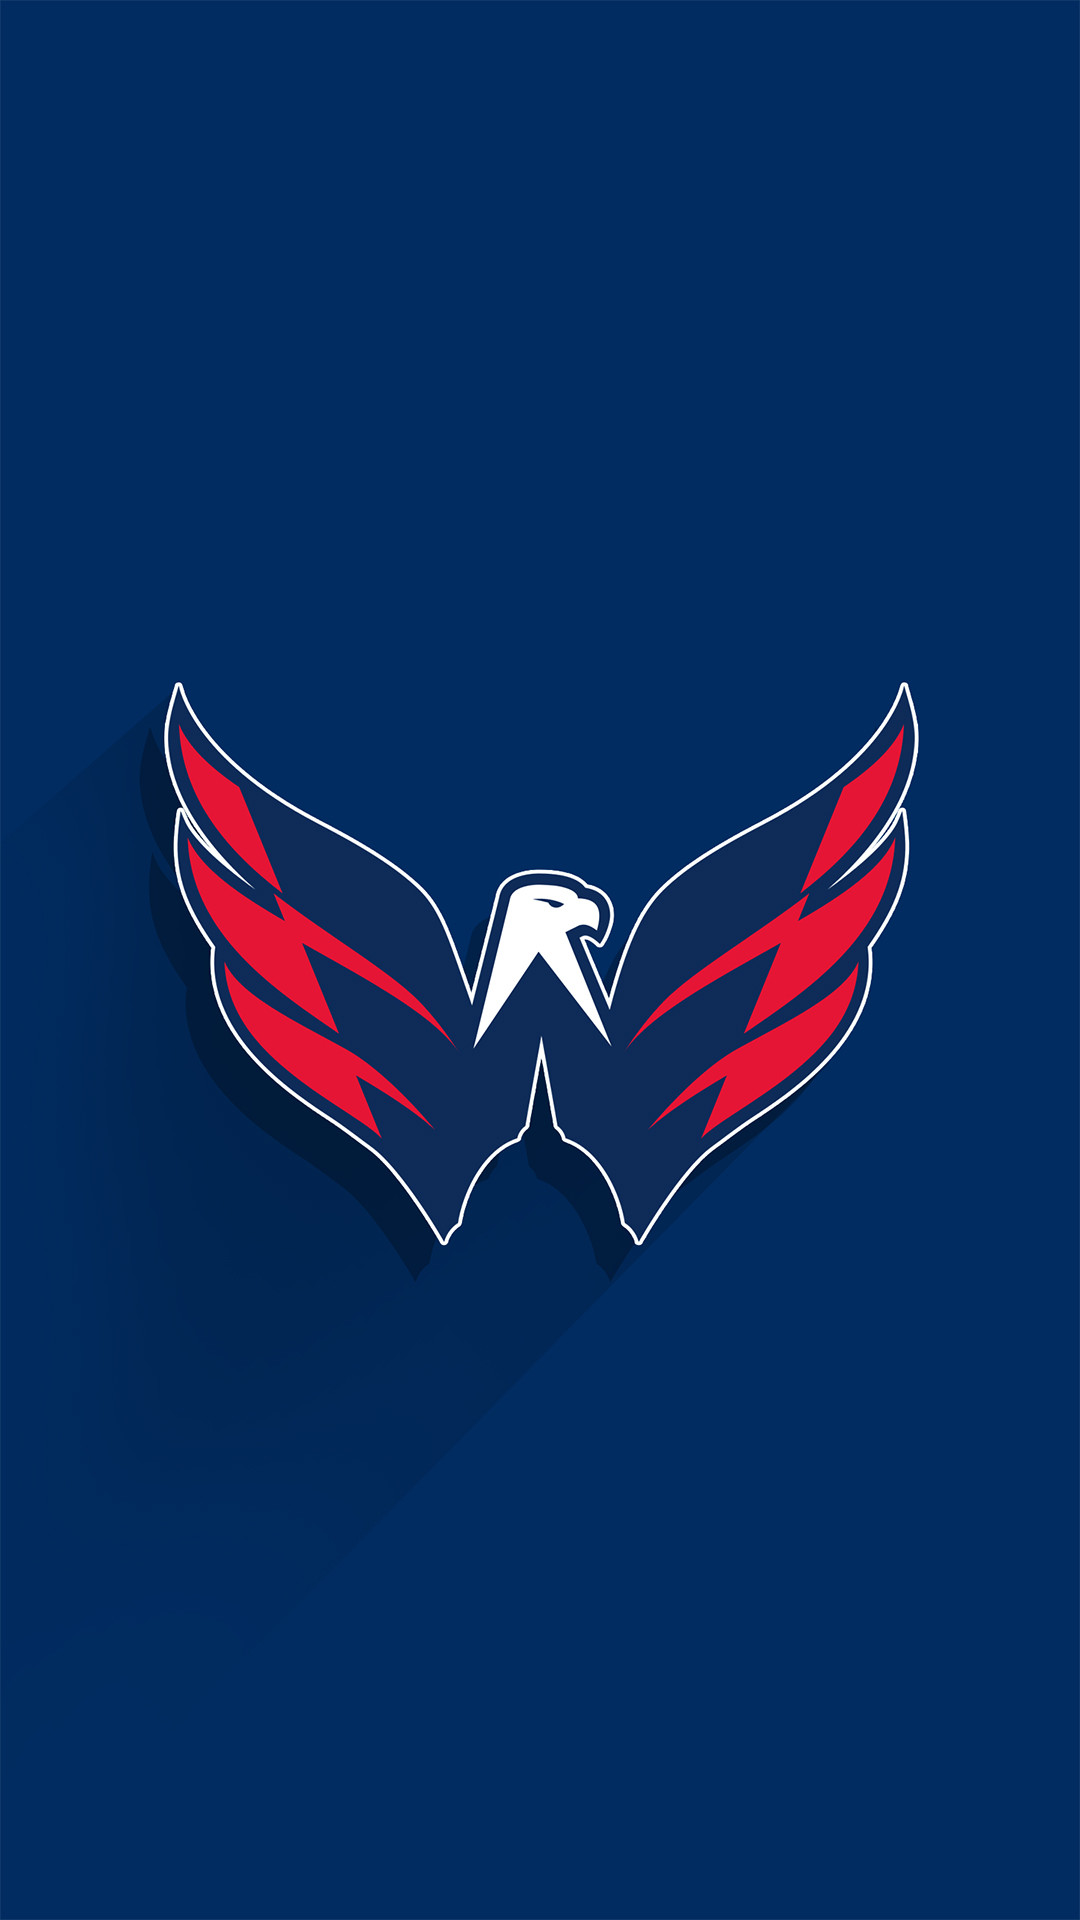 Washington Capitals Wallpaper iPhone 6 Plus. Click Here To Download